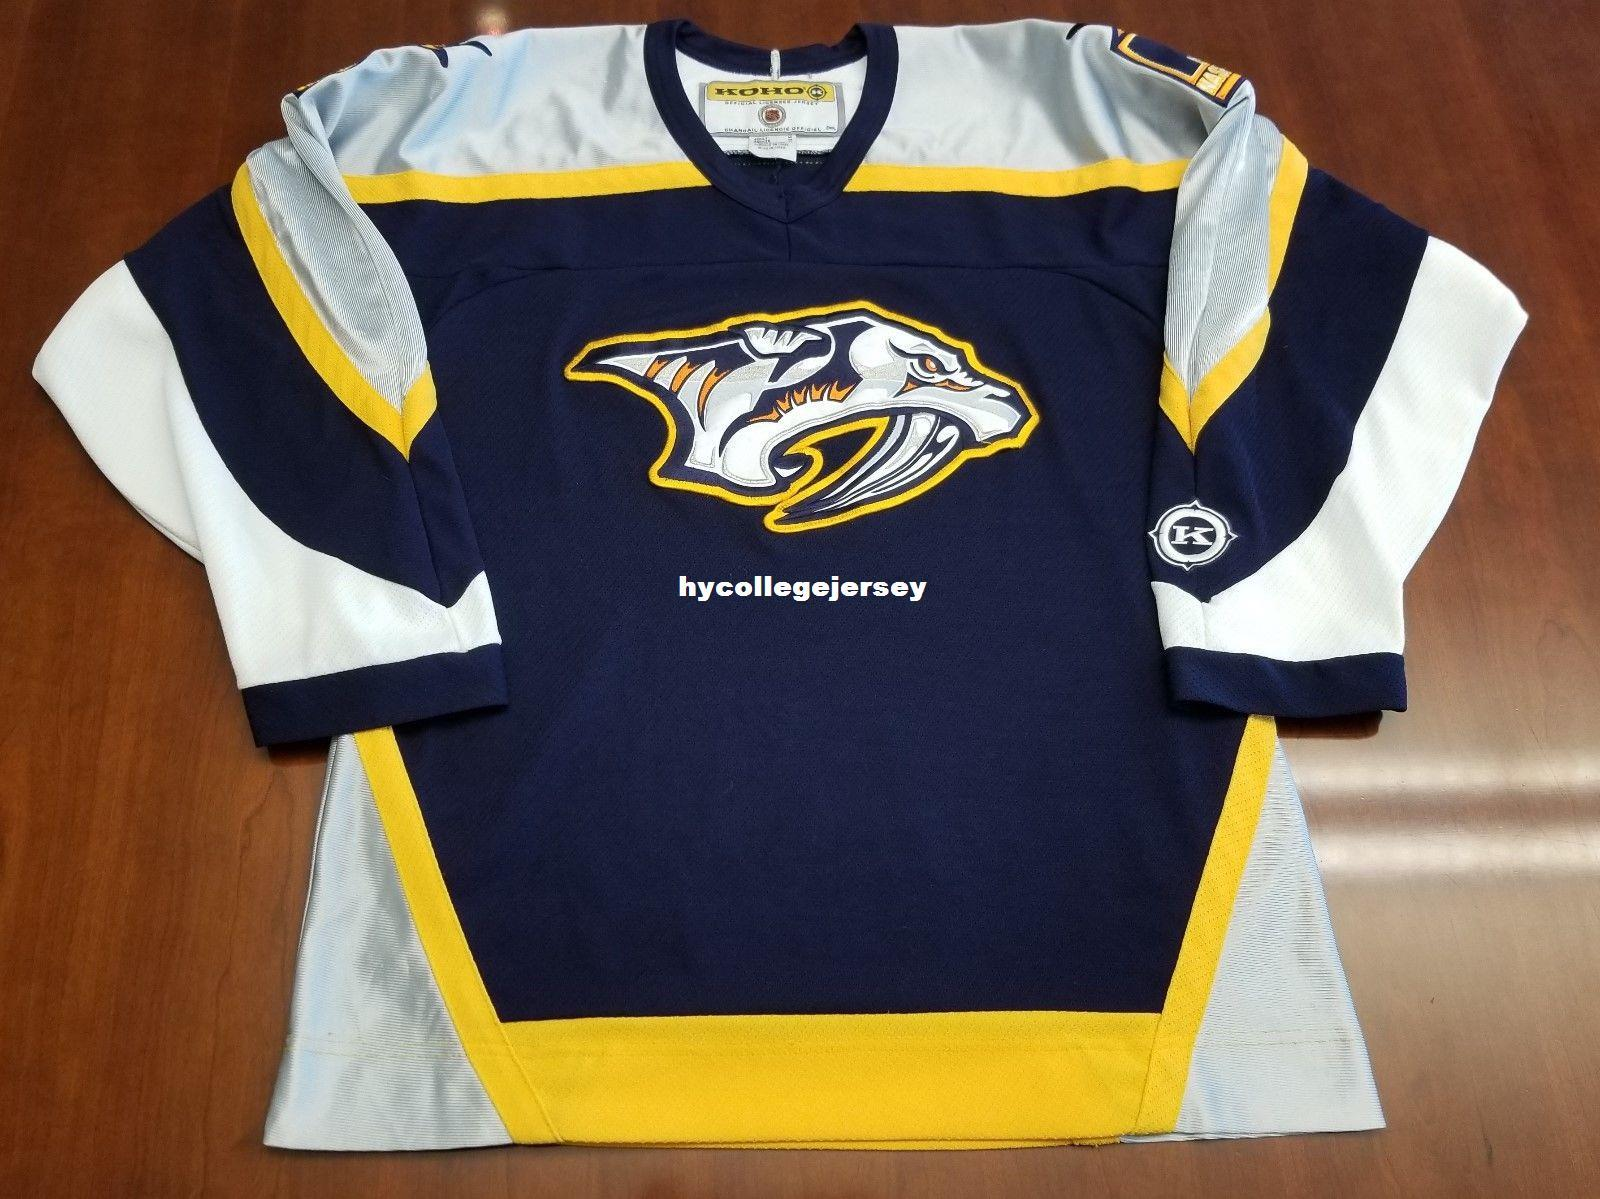 2019 Wholesale Custom Nashville Predators Vintage Koho Cheap Hockey Jersey  Blue Preds Mens Retro Jerseys From Hycollegejersey e5c300519